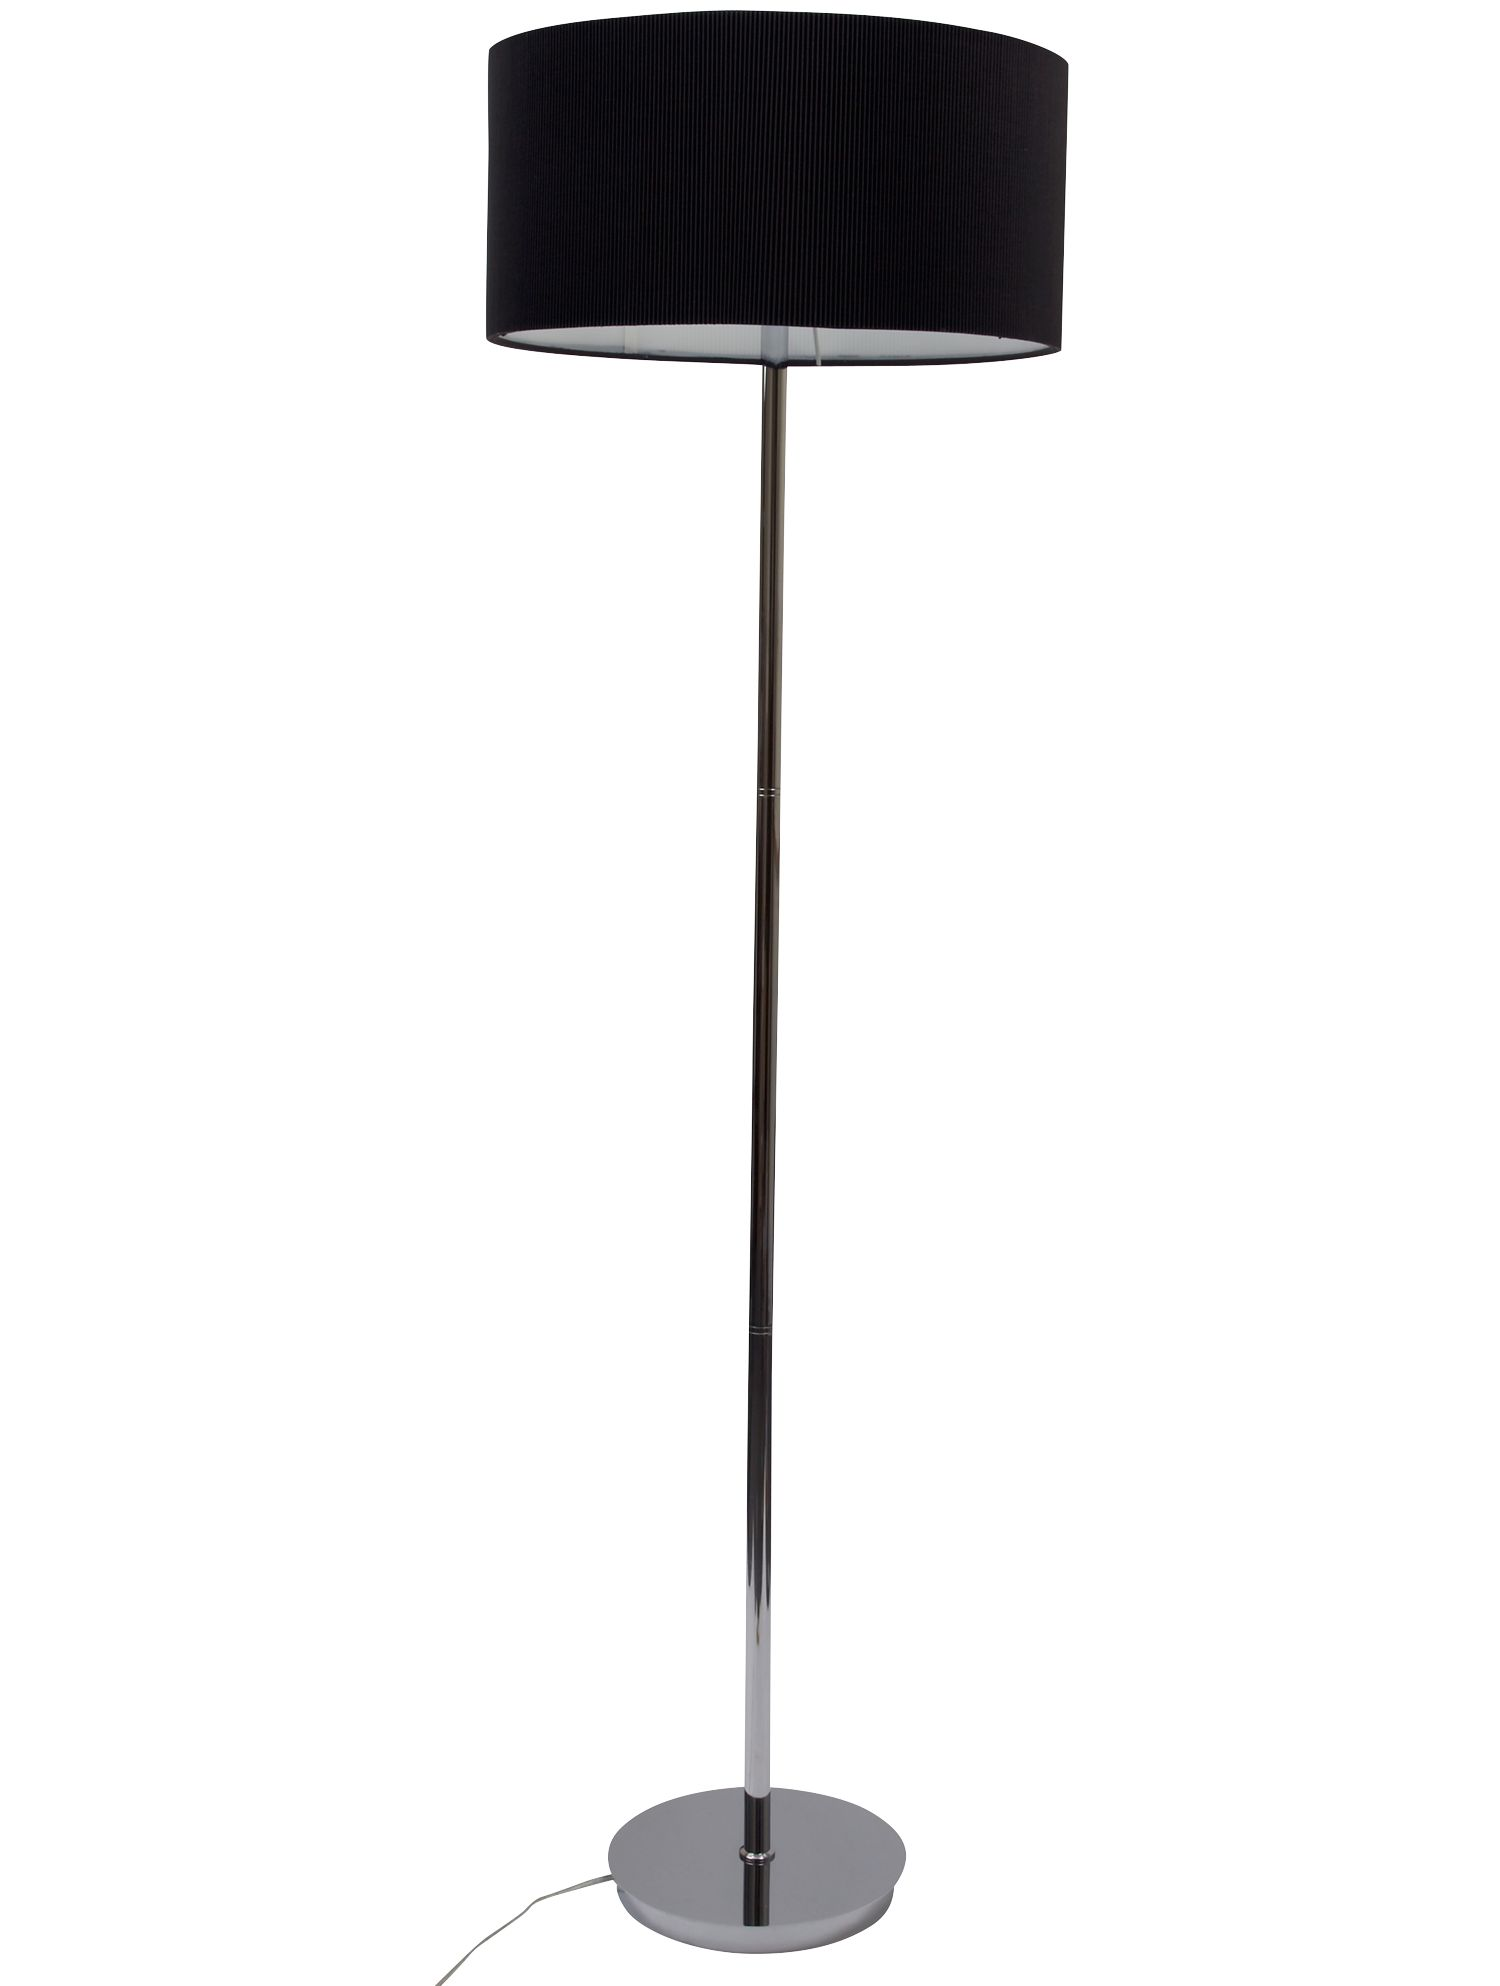 Zaragoza black floor lamp by House of Fraser